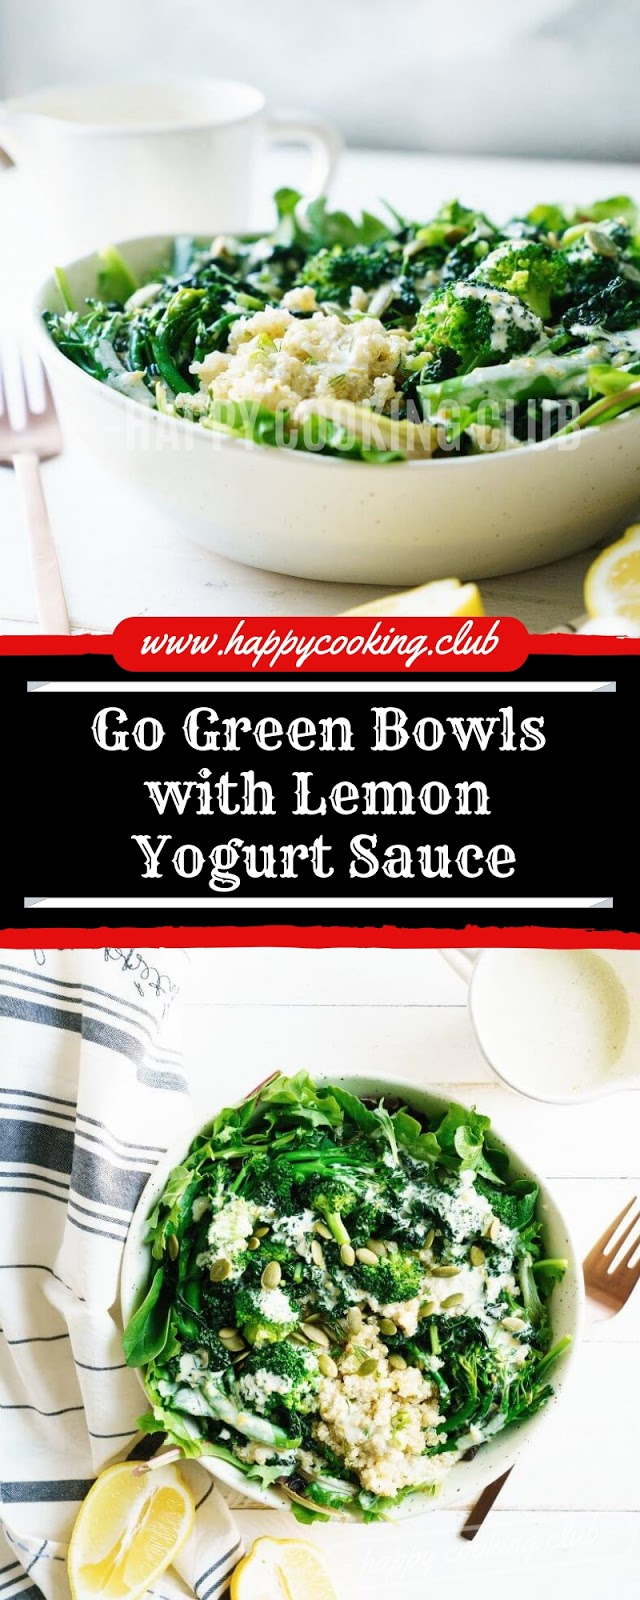 Go Green Bowls with Lemon Yogurt Sauce